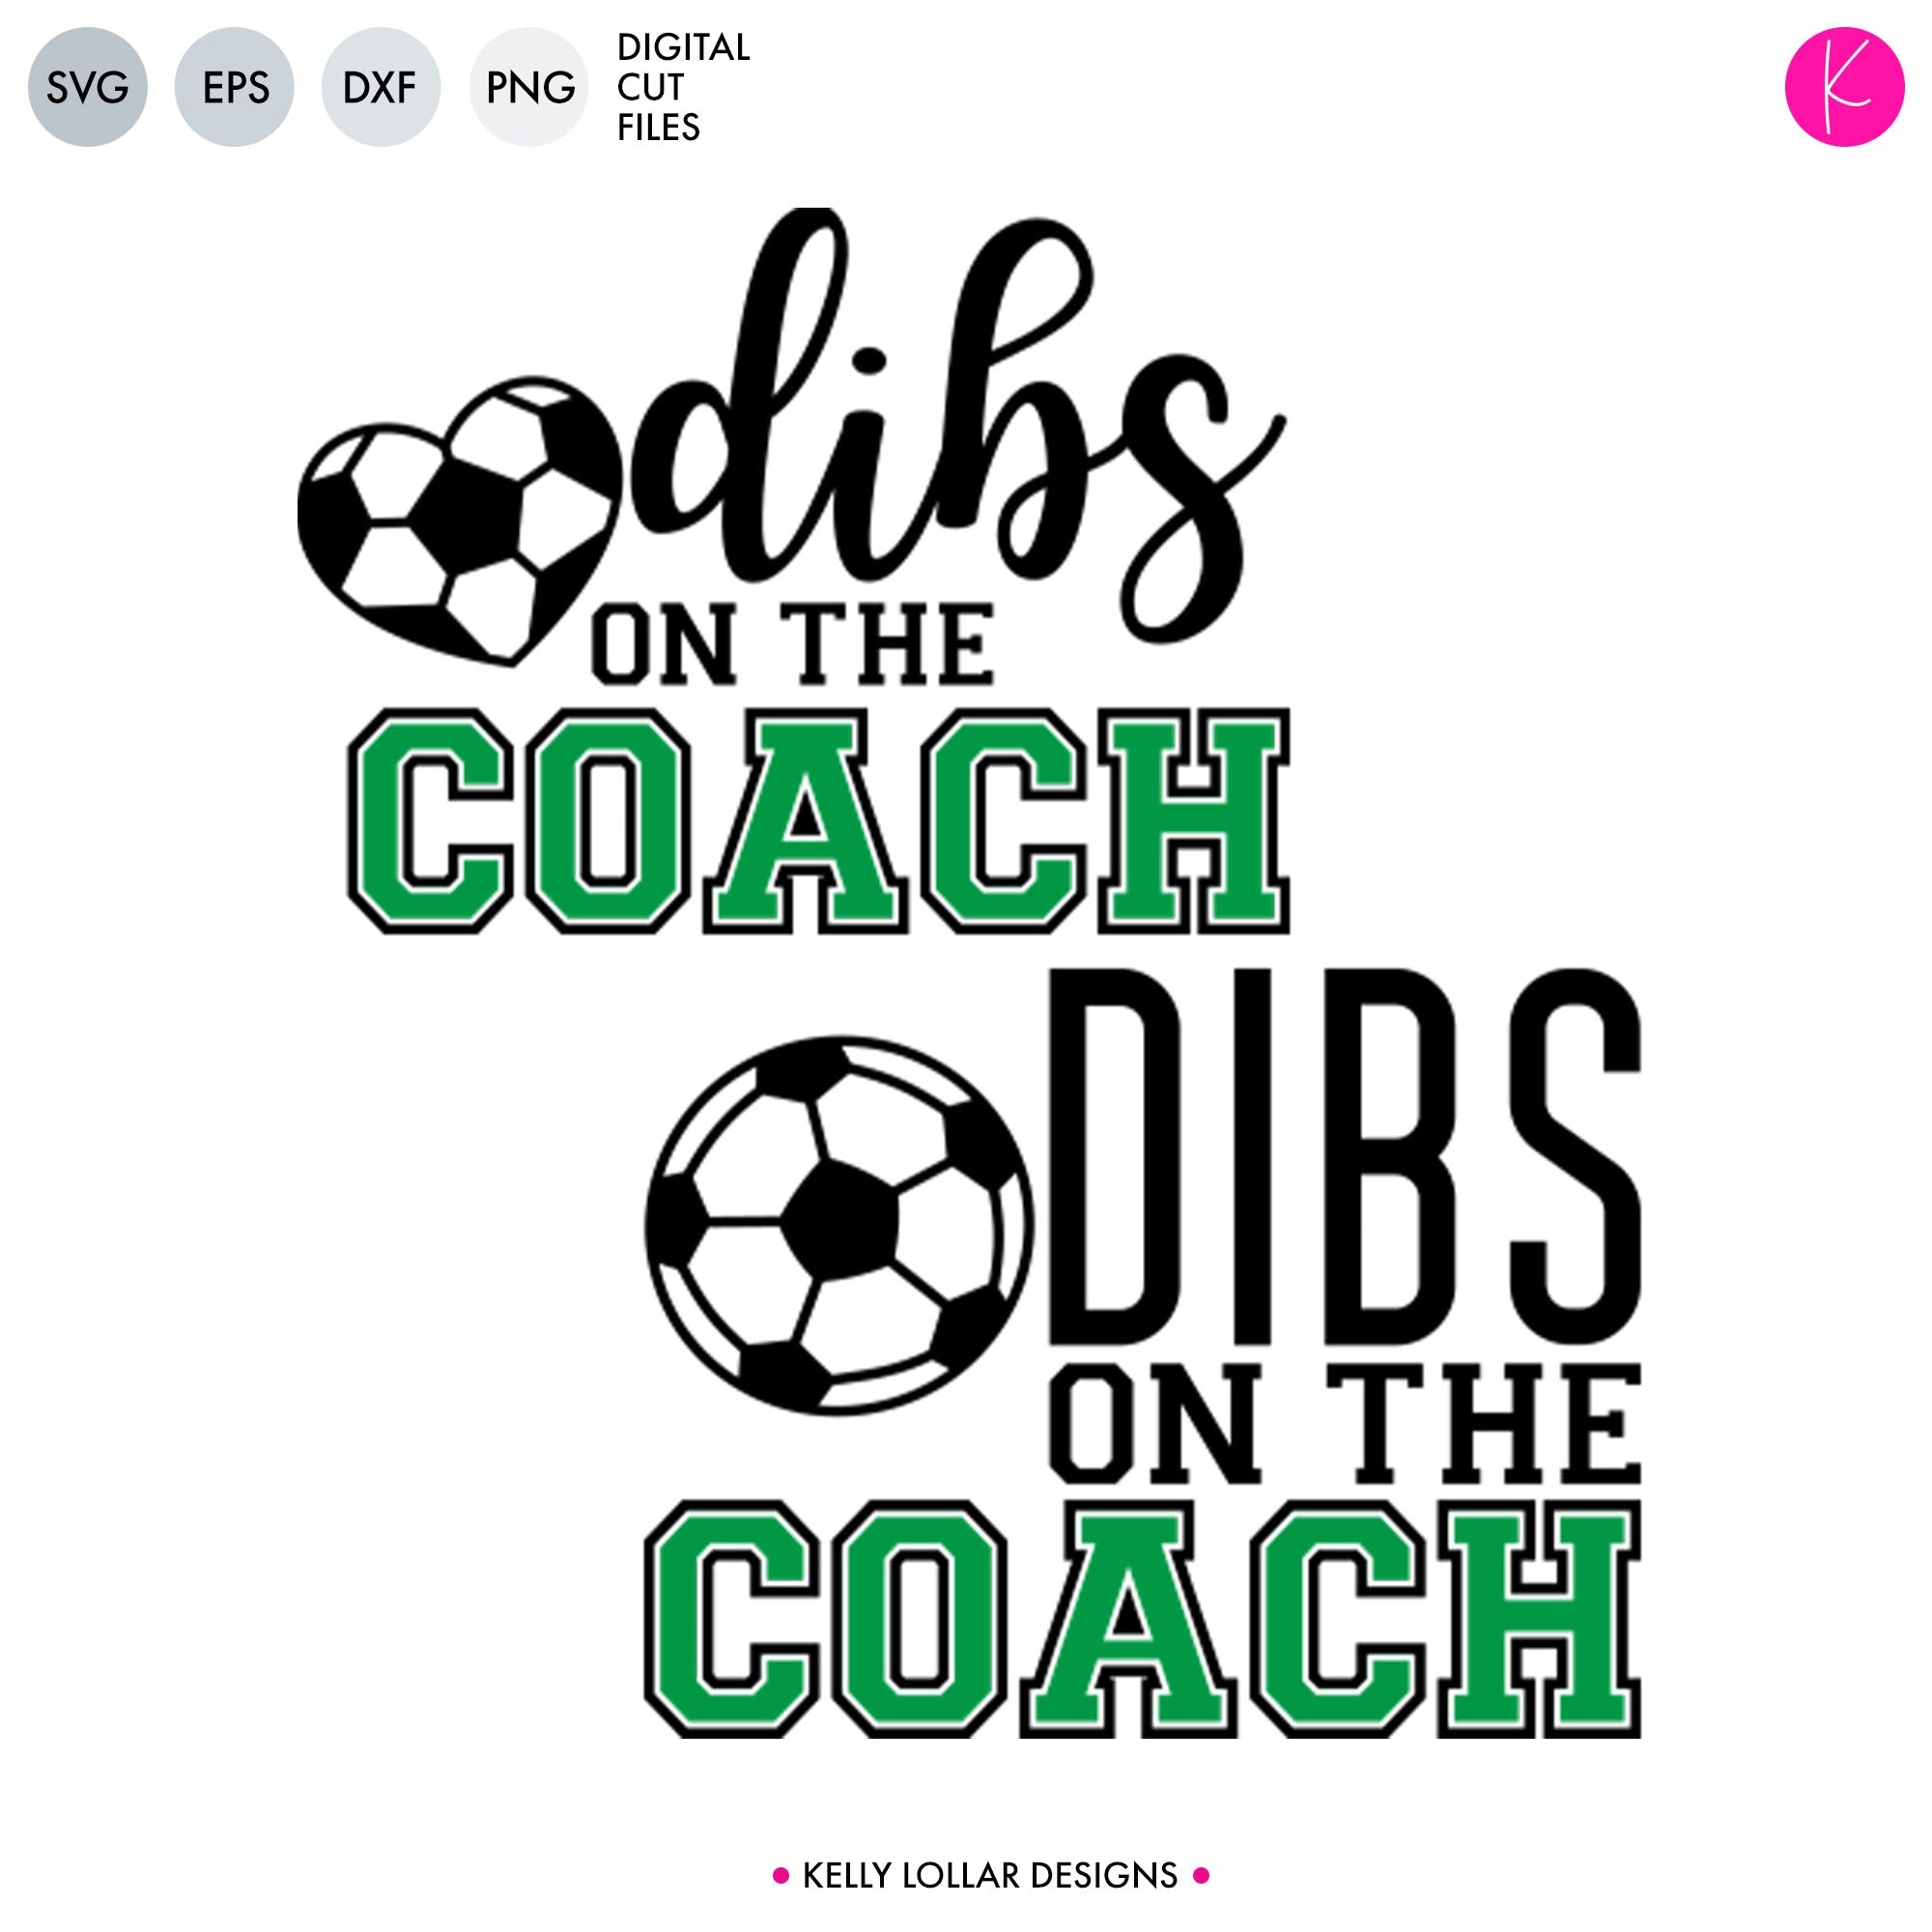 Dibs on the Coach | SVG DXF EPS PNG Cut Files Quotes for the Coach's Wife or Husband for Shirts, Totes and Bleacher Seats | SVG DXF PNG Cut Files 4 files for each format, script and print copies of: version